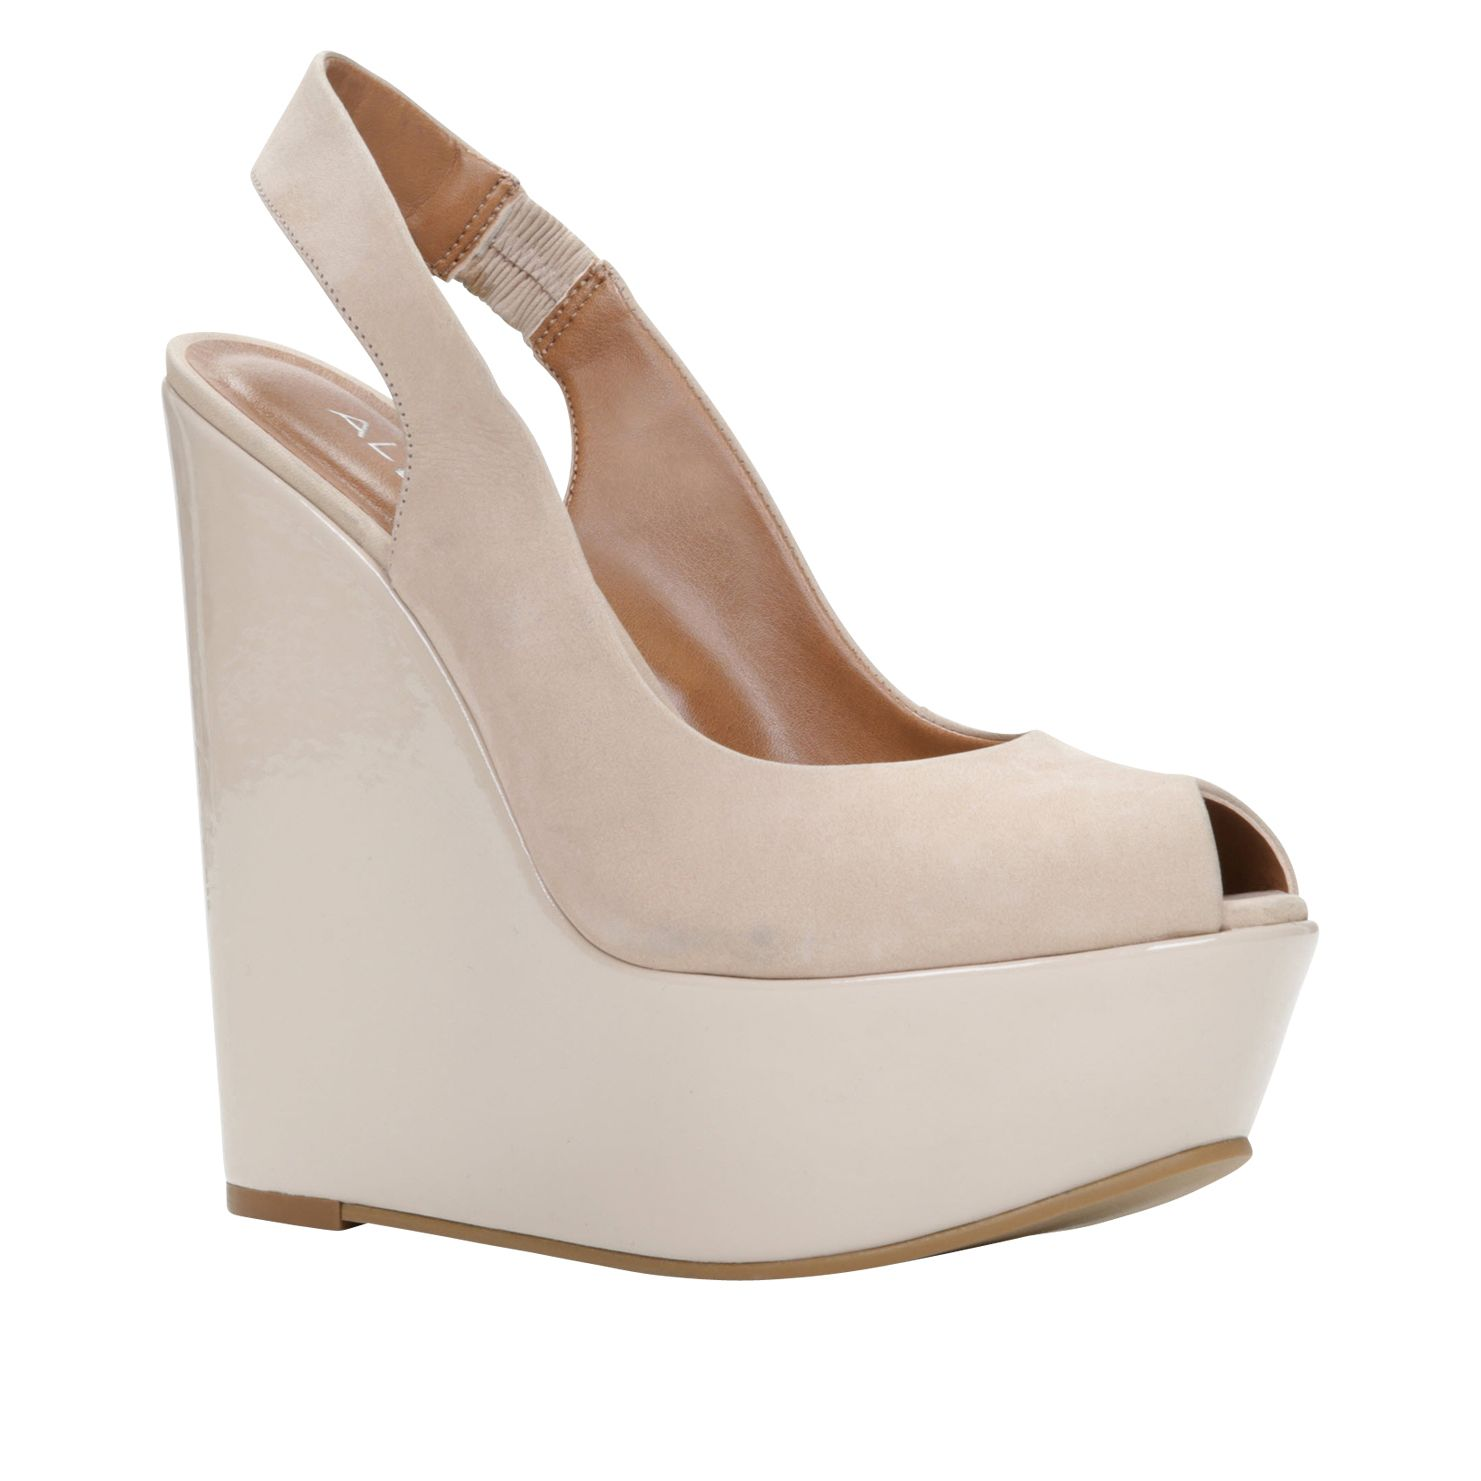 Nydorensen wedge peep toe sandals